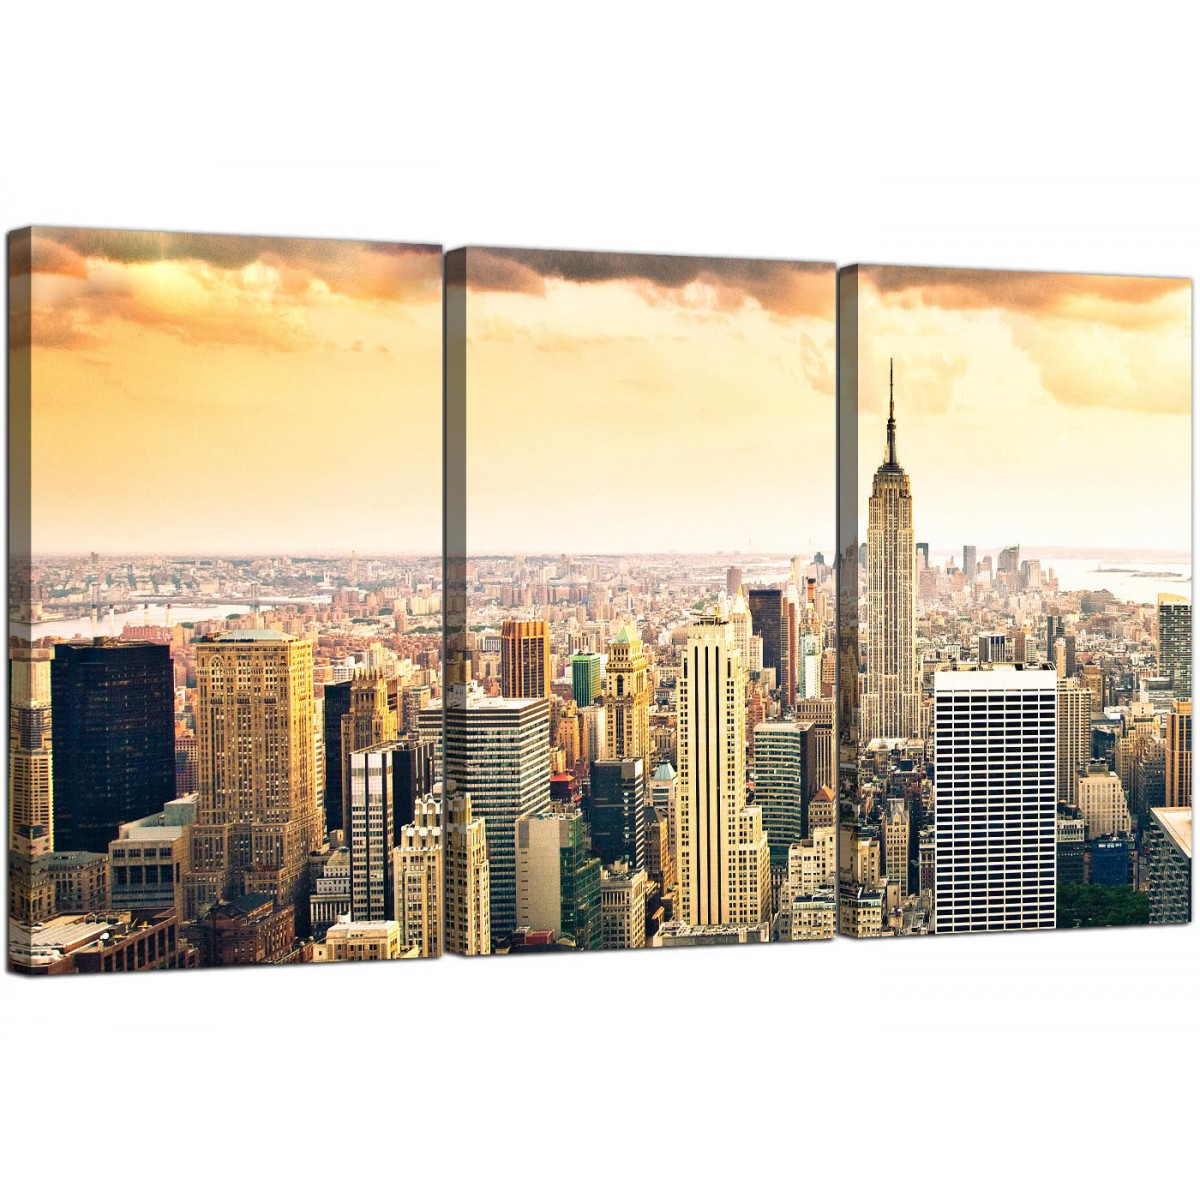 Fantastic New York Wall Art Illustration - Art & Wall Decor ...